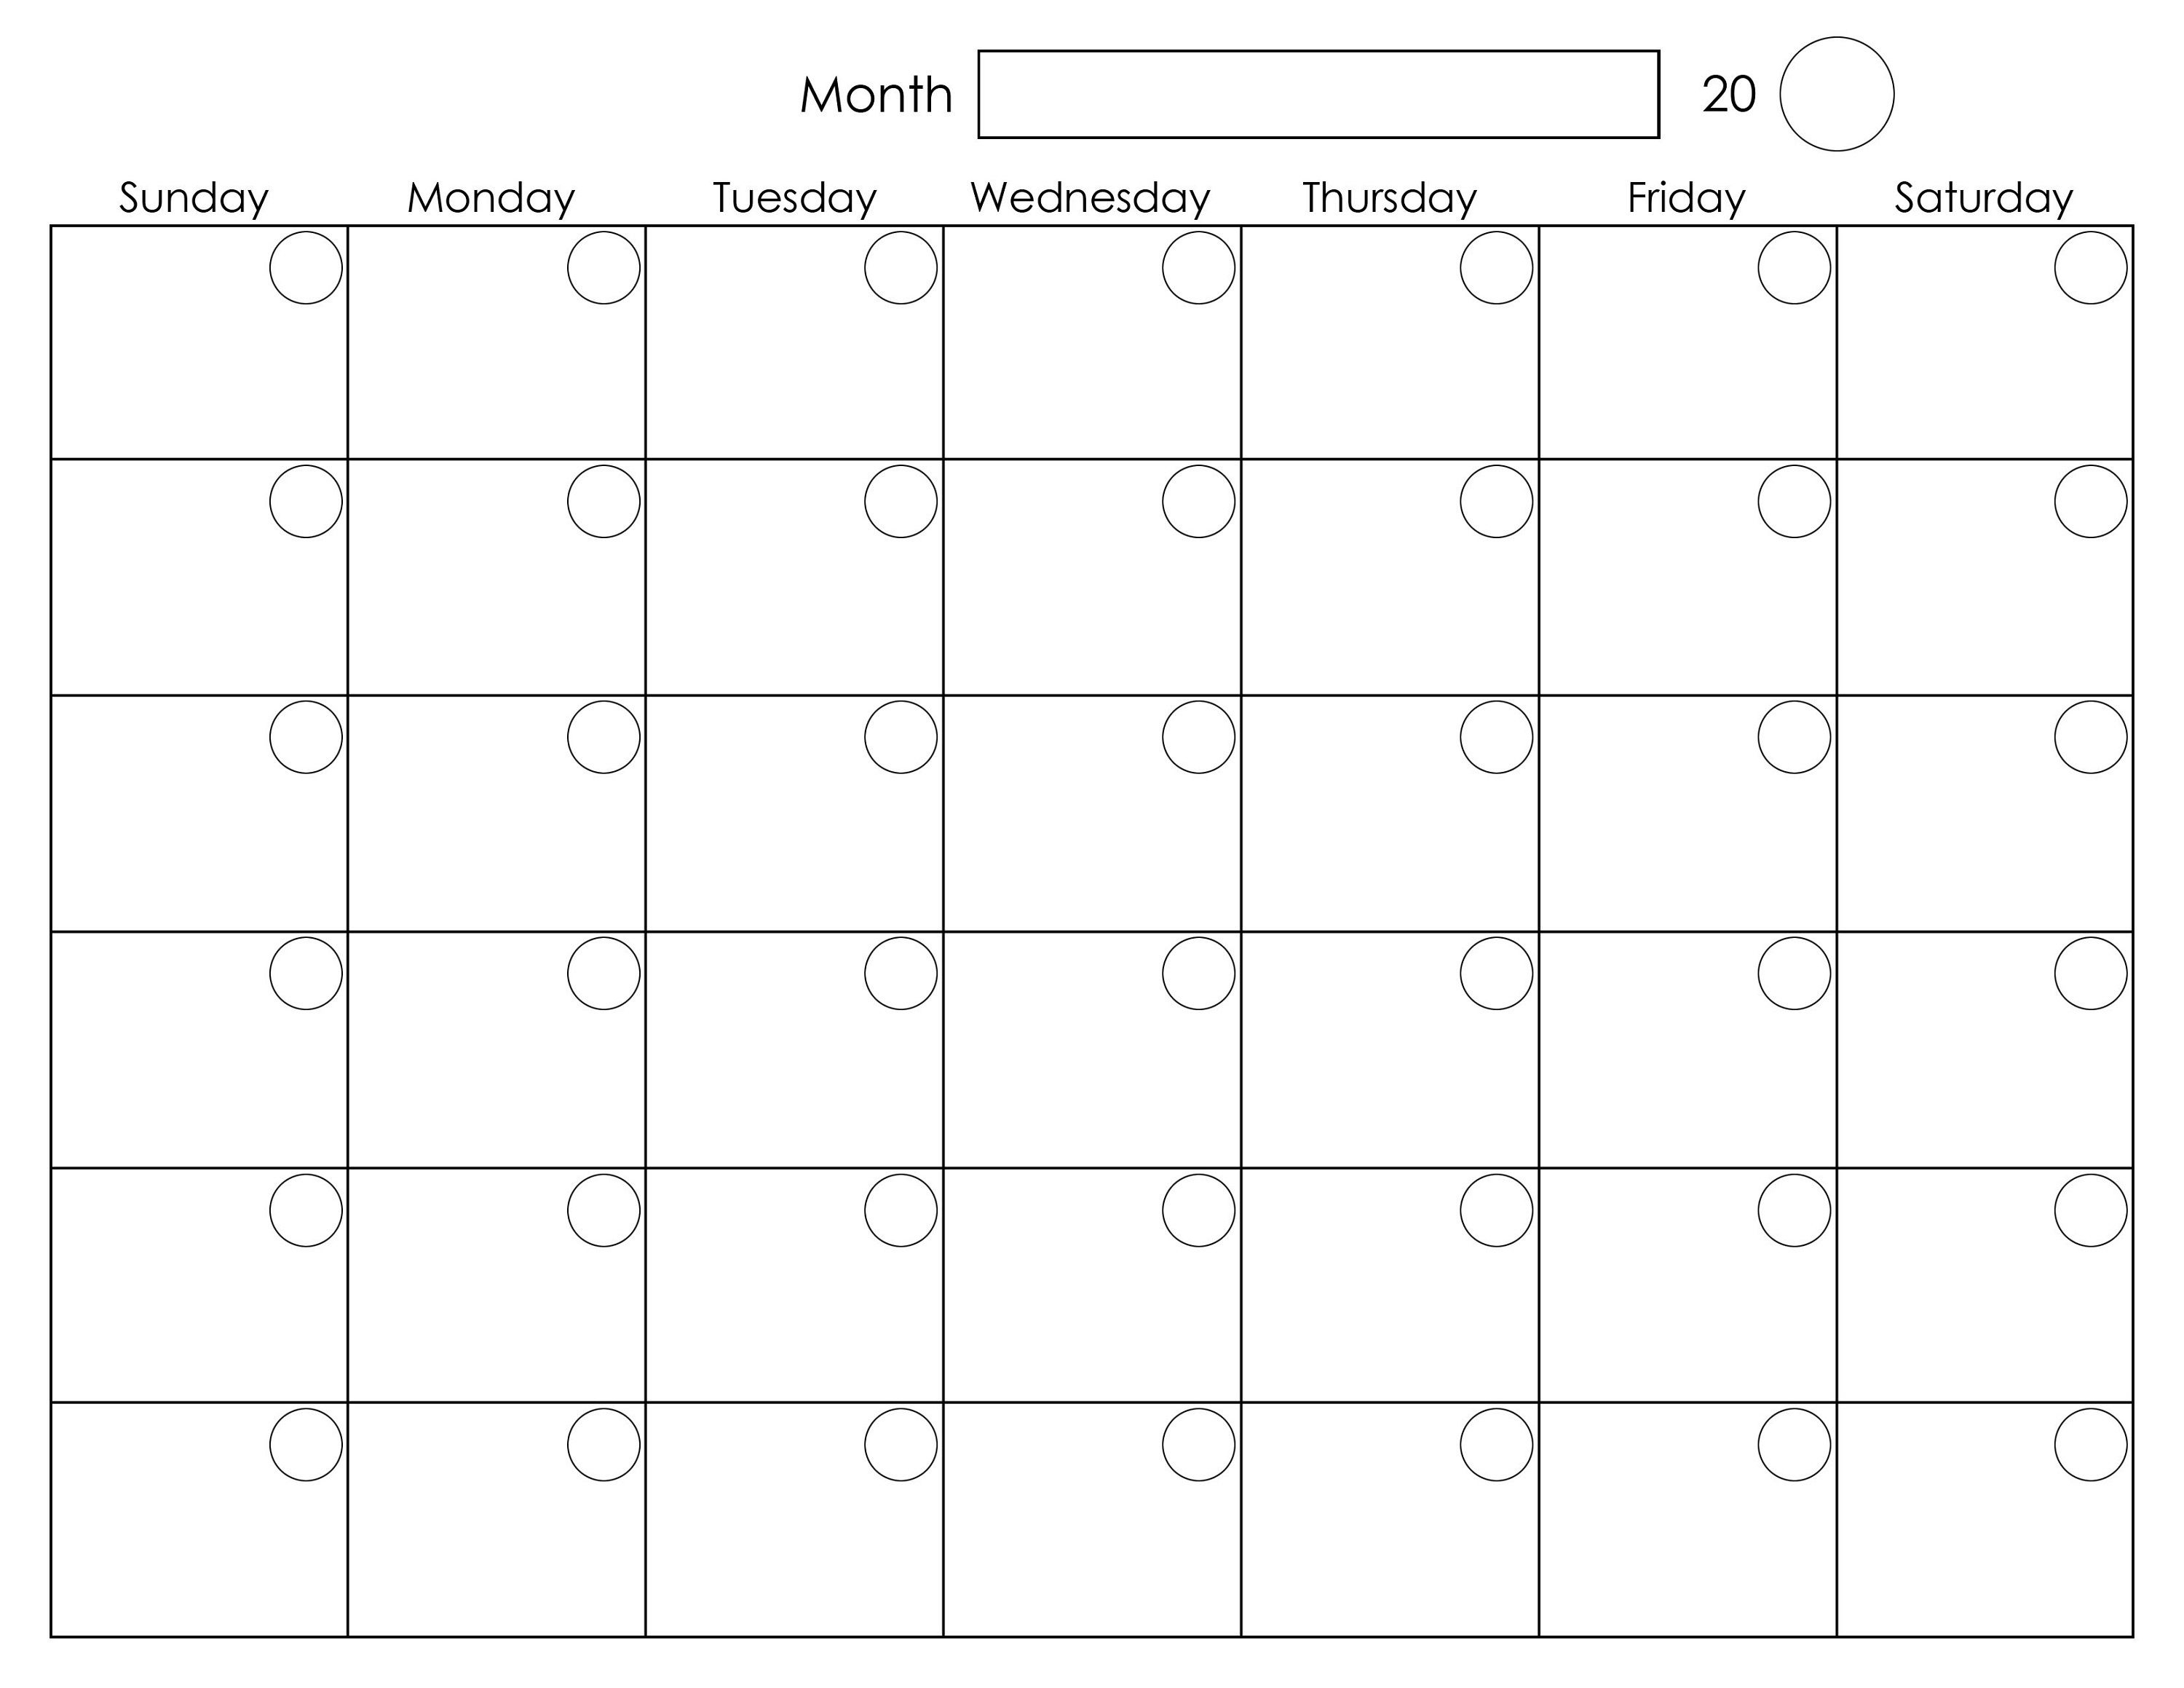 Printable Blank Monthly Calendar | Calendar Template Printable with regard to Blank Monthly Calendar Template